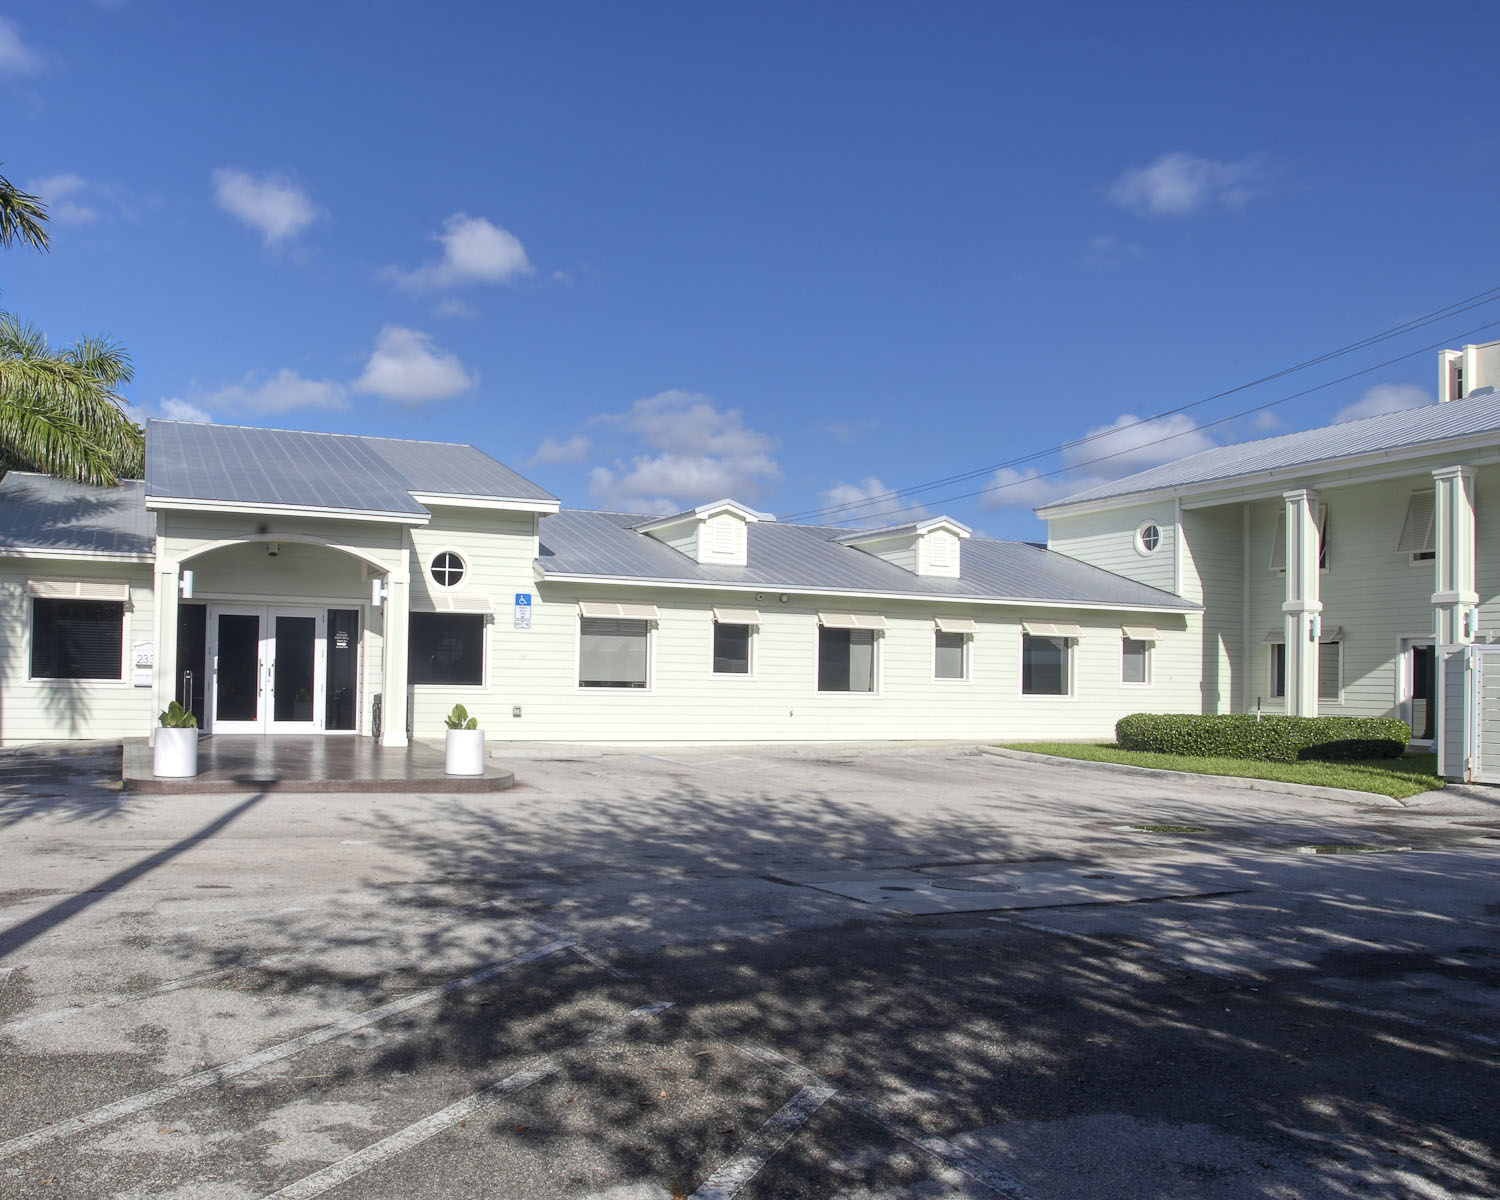 Fort Lauderdale detox center image 3 private comfortable accommodations with controlled sunshine and fresh air